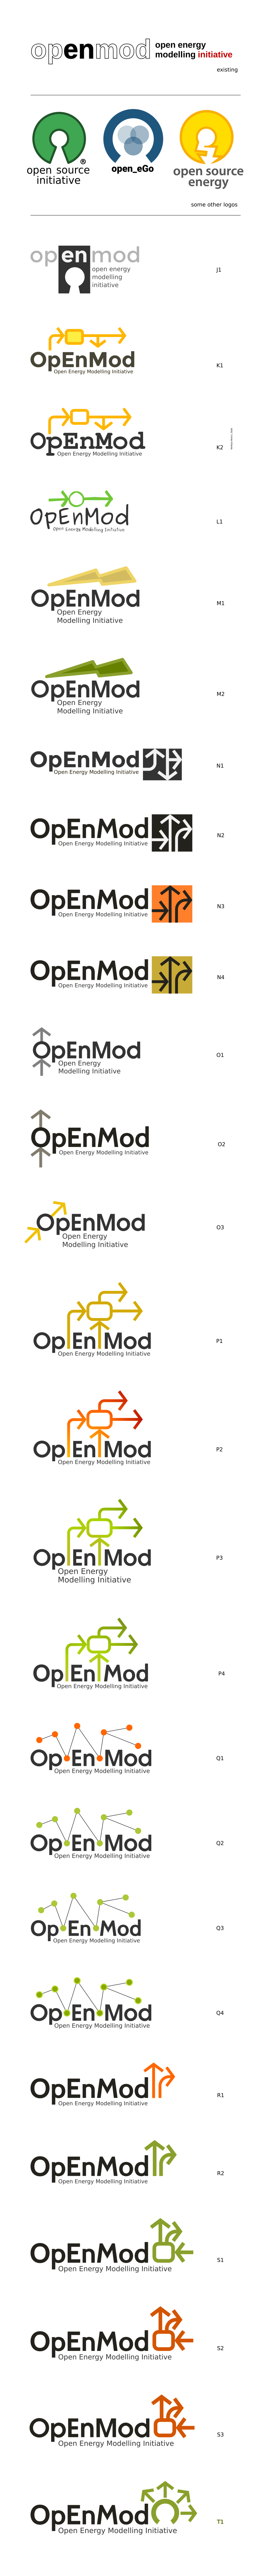 Openmod logo / loop two